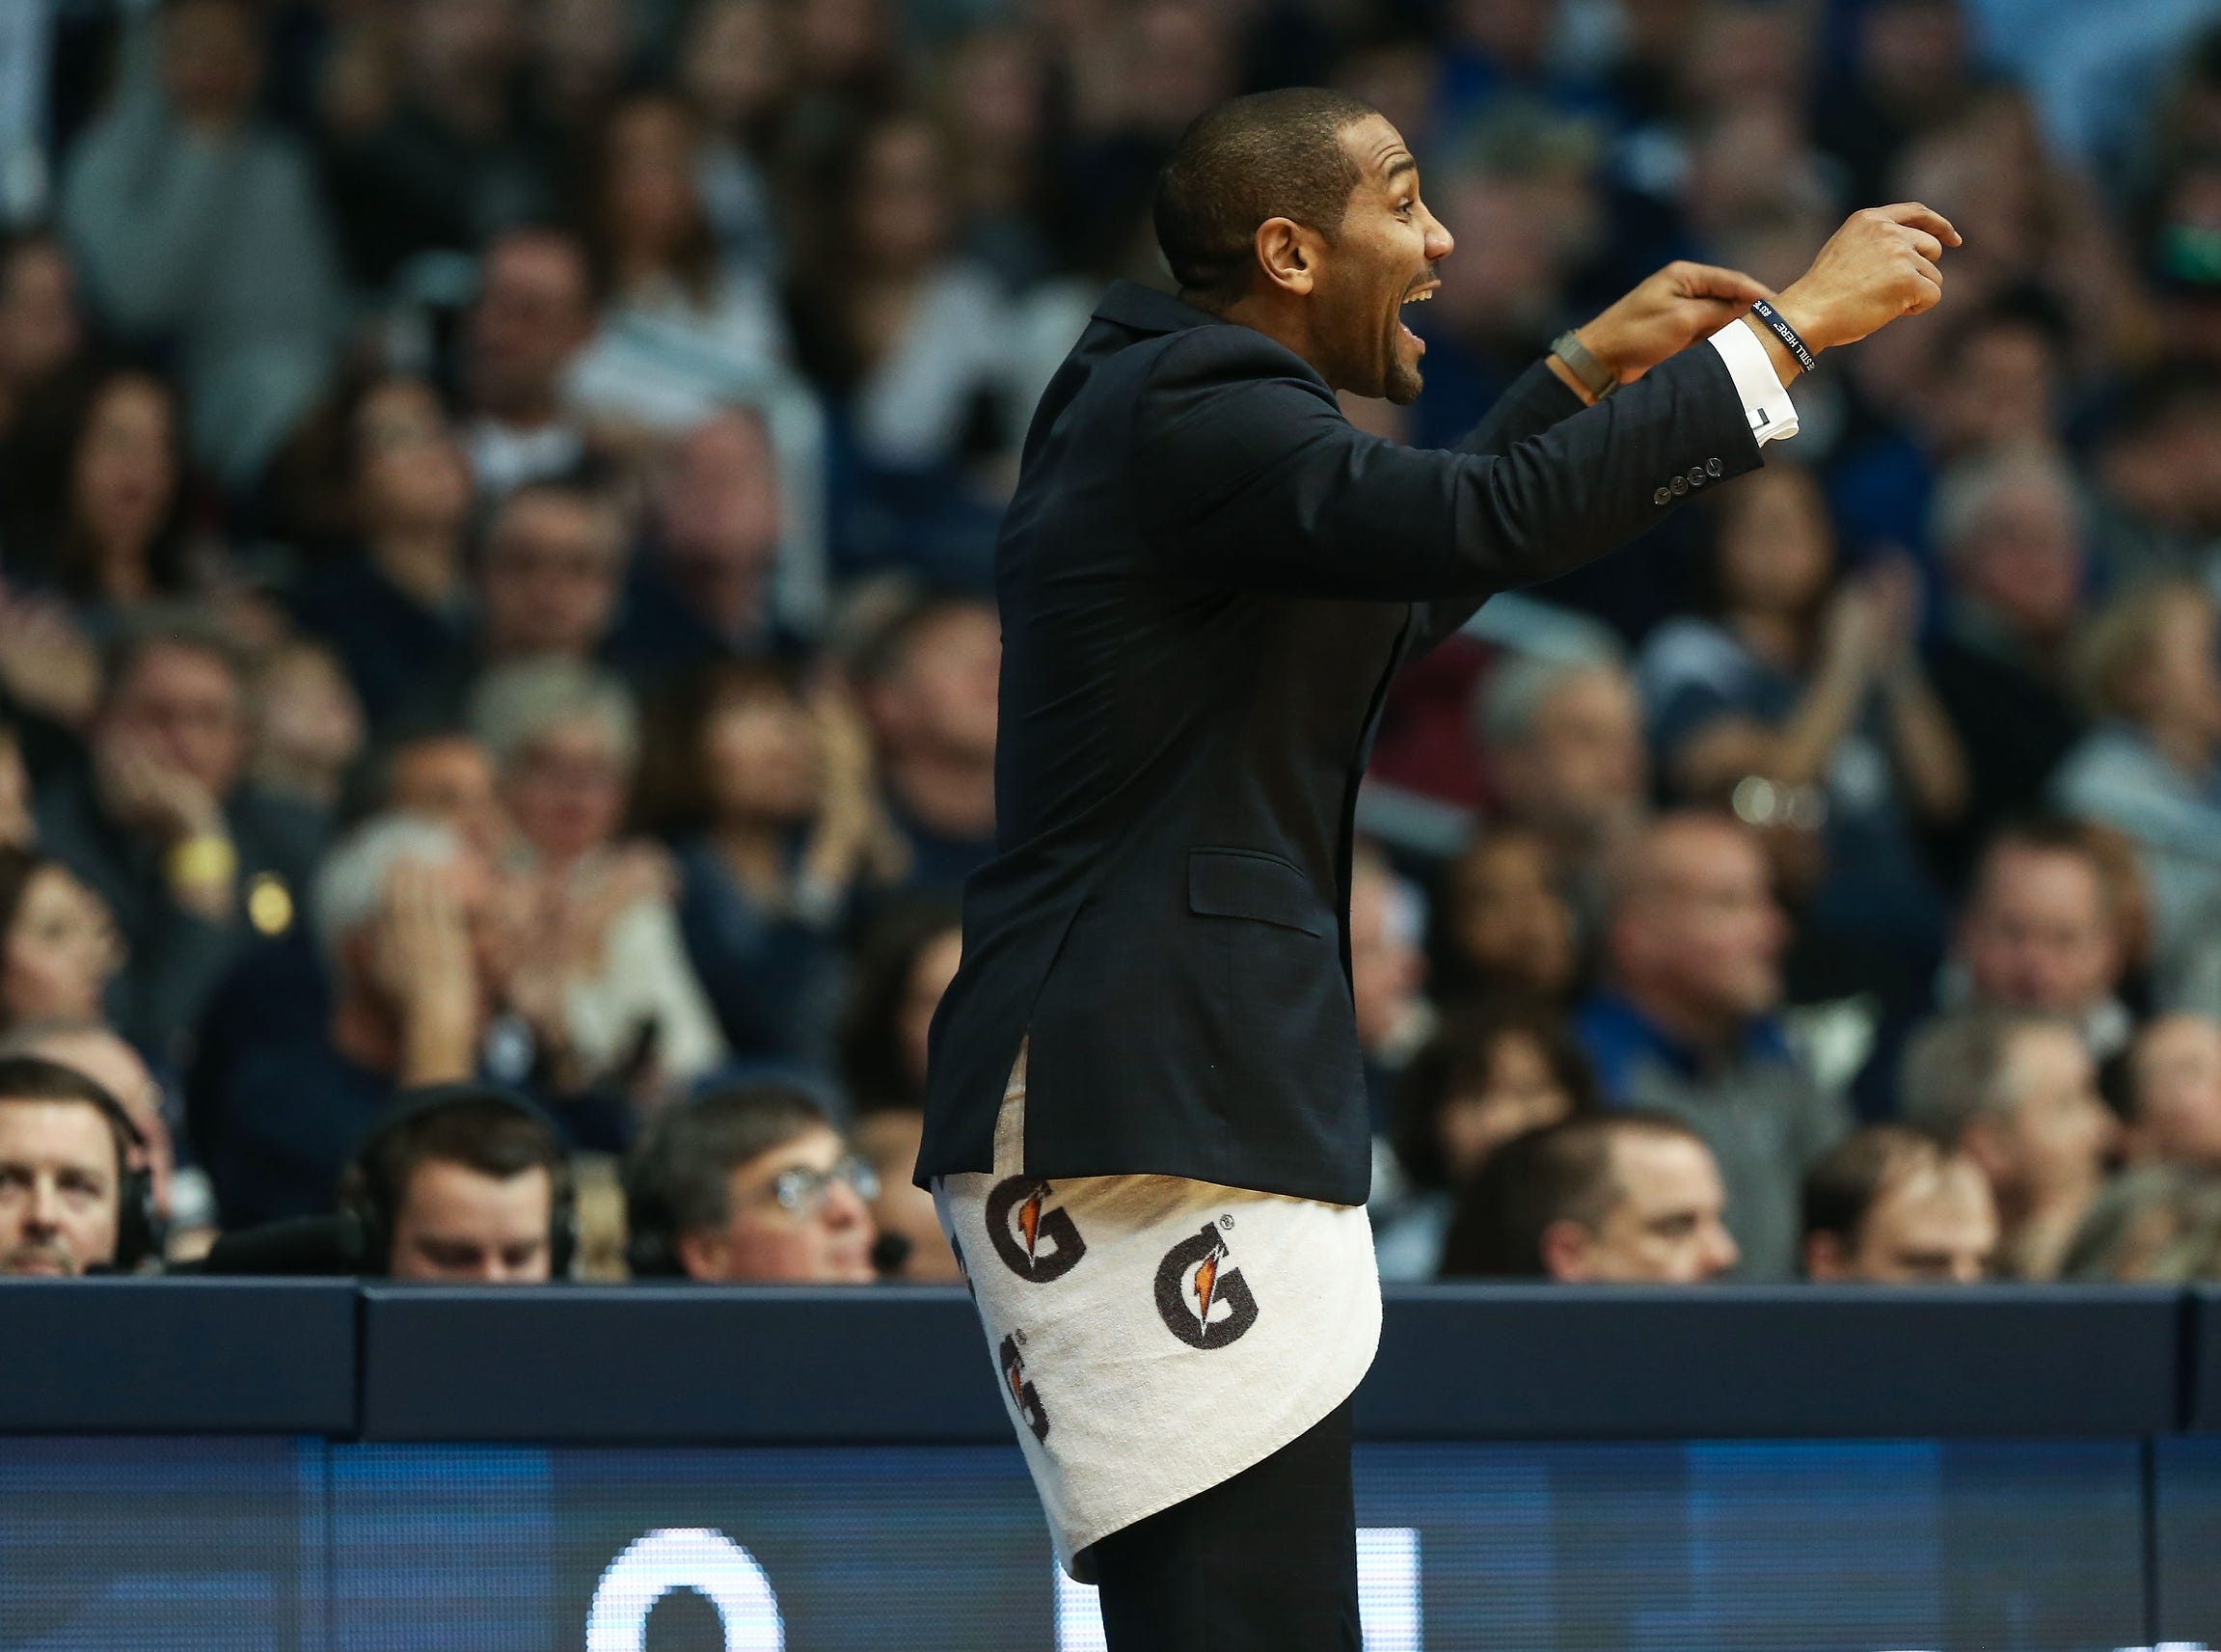 Butler Bulldogs head coach LaVall Jordan during the second half of game action between Butler University and Creighton University, at Hinkle Fieldhouse in Indianapolis, Indiana on Saturday, Jan. 5, 2019. The Butler Bulldogs defeated the Creighton Bluejays 84-69.